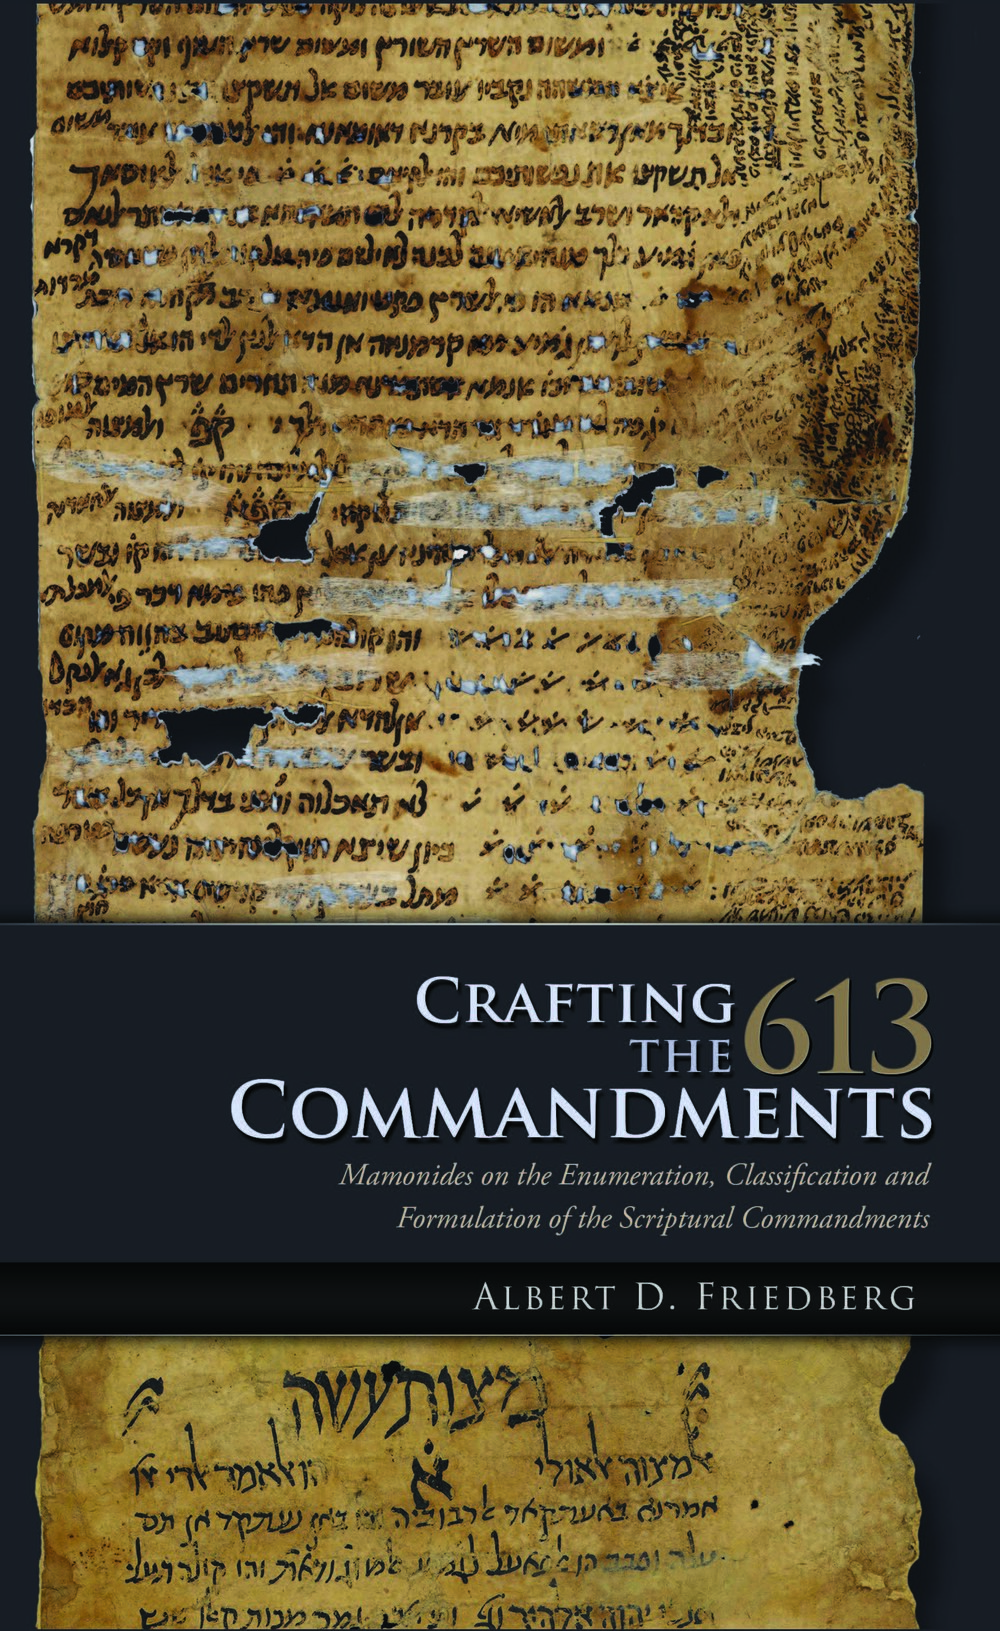 Crafting the 613 Commandments:   Maimonides on the Enumeration, Classification, and Formulation of the Scriptural Commandments  Albert D. Friedberg   Read on JSTOR  |  Purchase book